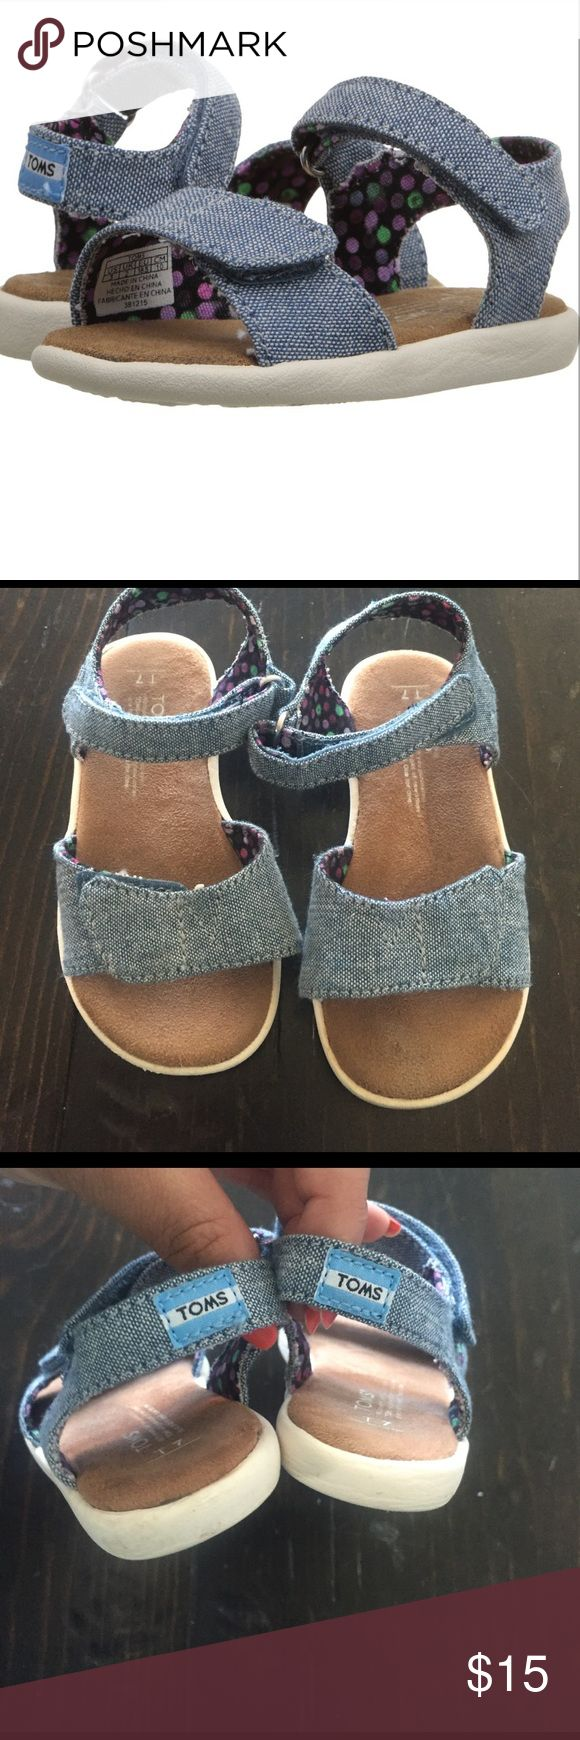 Kids TOMS T7 Cute and comfortable TOMS sandals in good used condition TOMS Shoes Sandals & Flip Flops